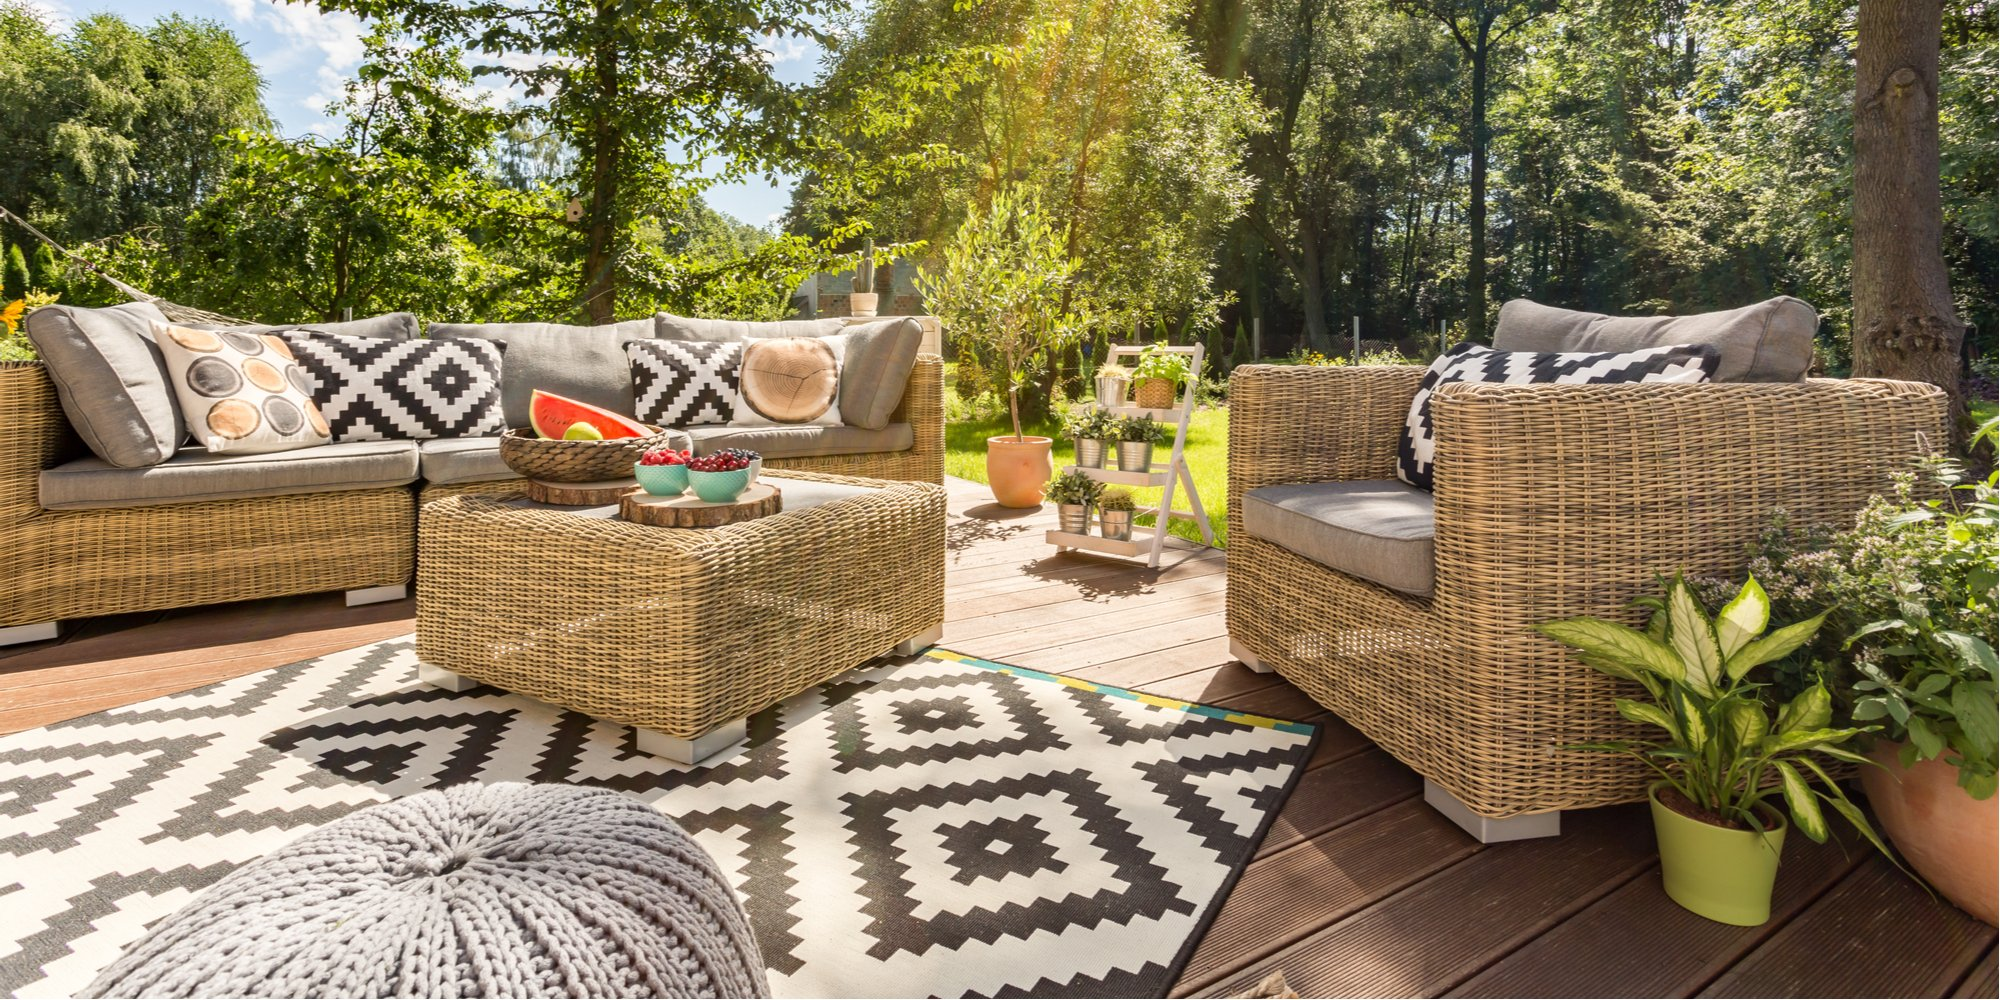 4 Best Time to Buy Patio Furniture